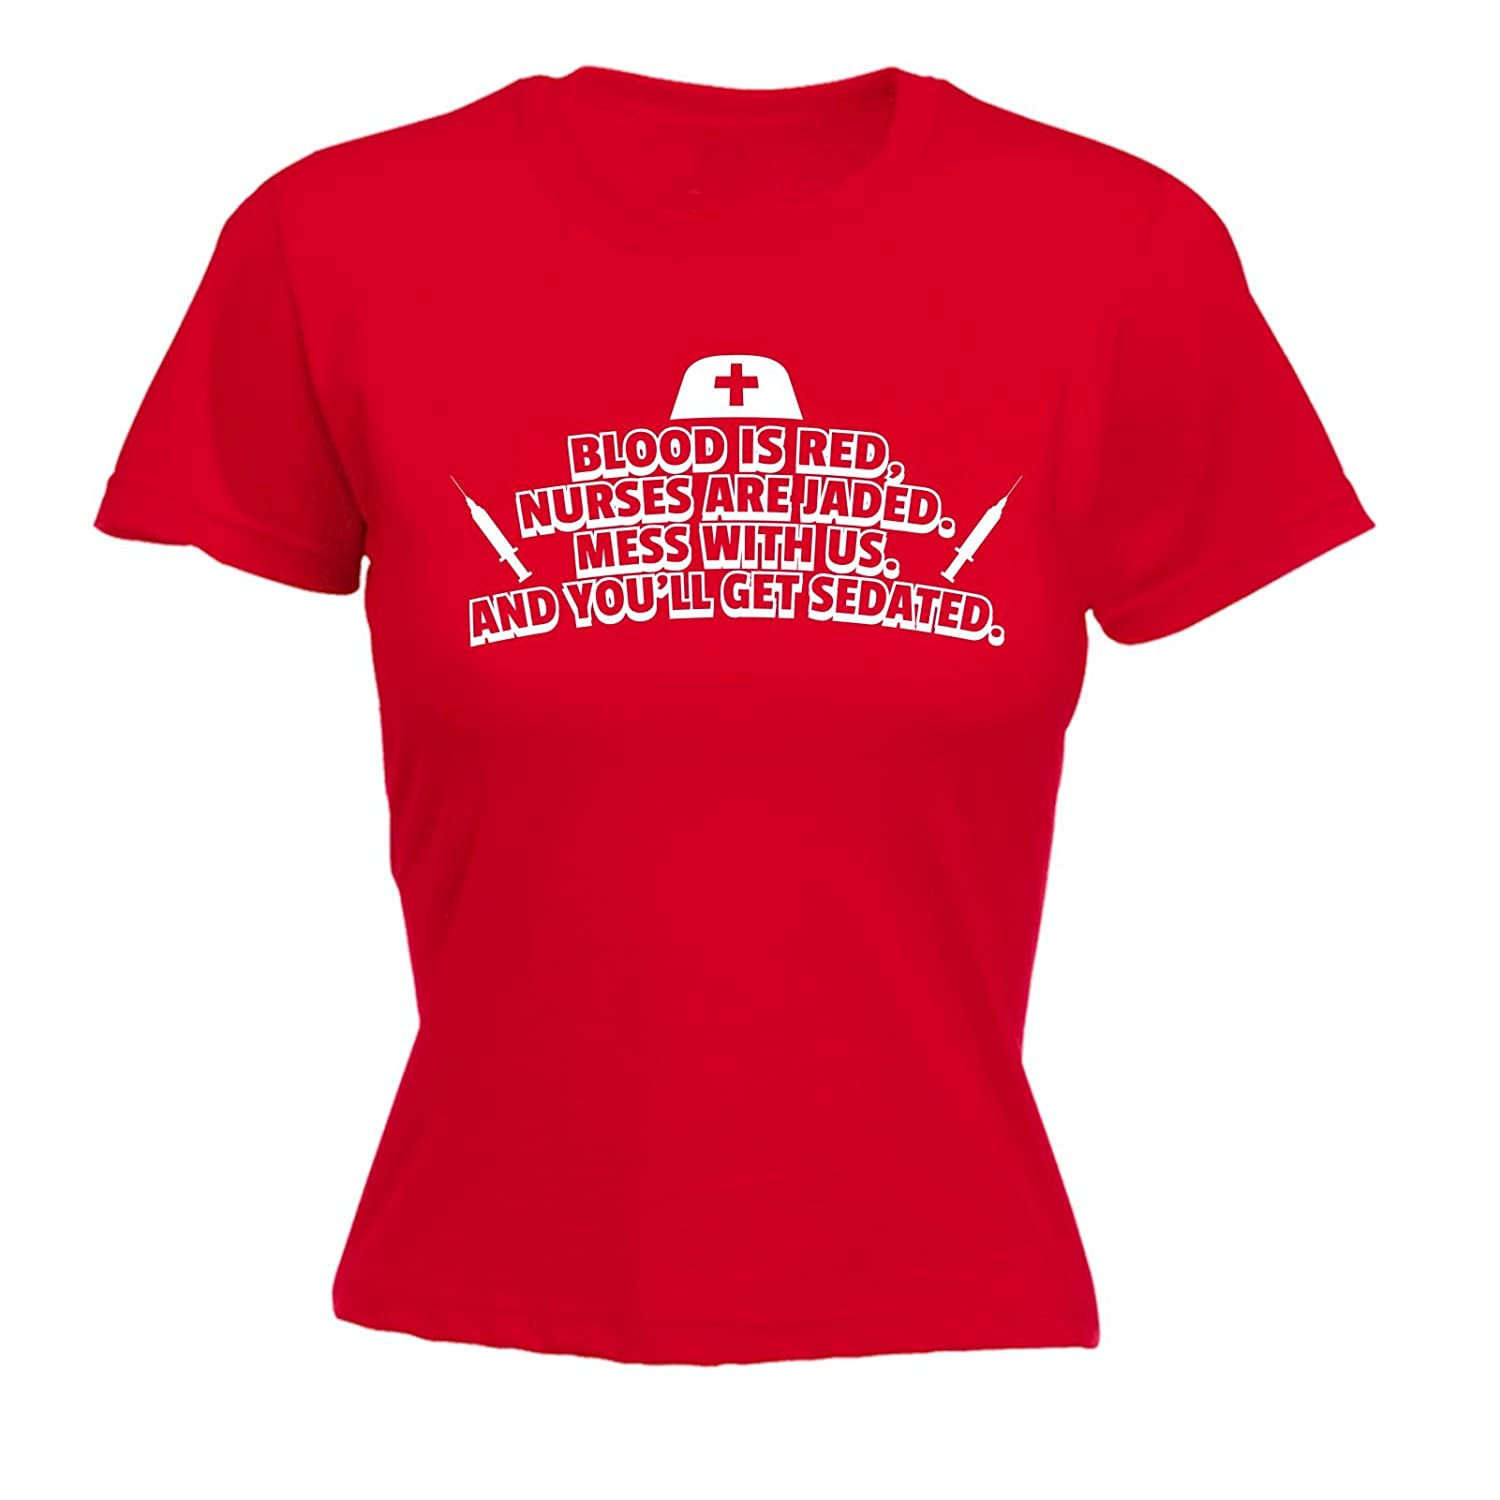 5120ae63d 123t Women's Blood Is Red Nurses Are Jaded Get Sedated - Fitted T-Shirt  Funny Christmas Casual Birthday Tee: Amazon.co.uk: Clothing